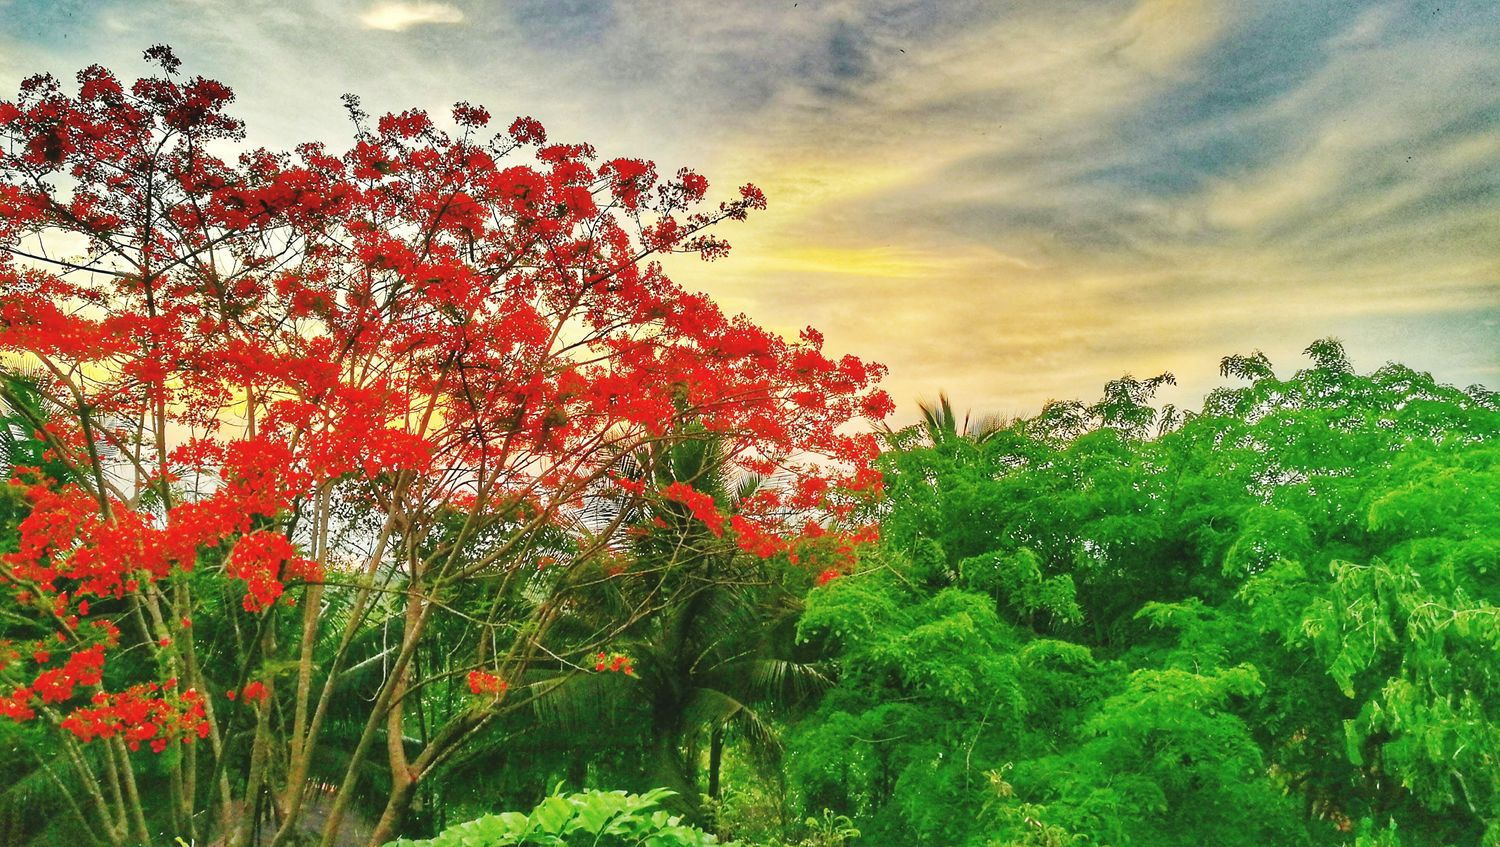 Huwei P9 contrest Nature Beauty In Nature Red Flower Green Summer Landscape Myanmar View Mawlamyaing Trip Taywai Ayechan